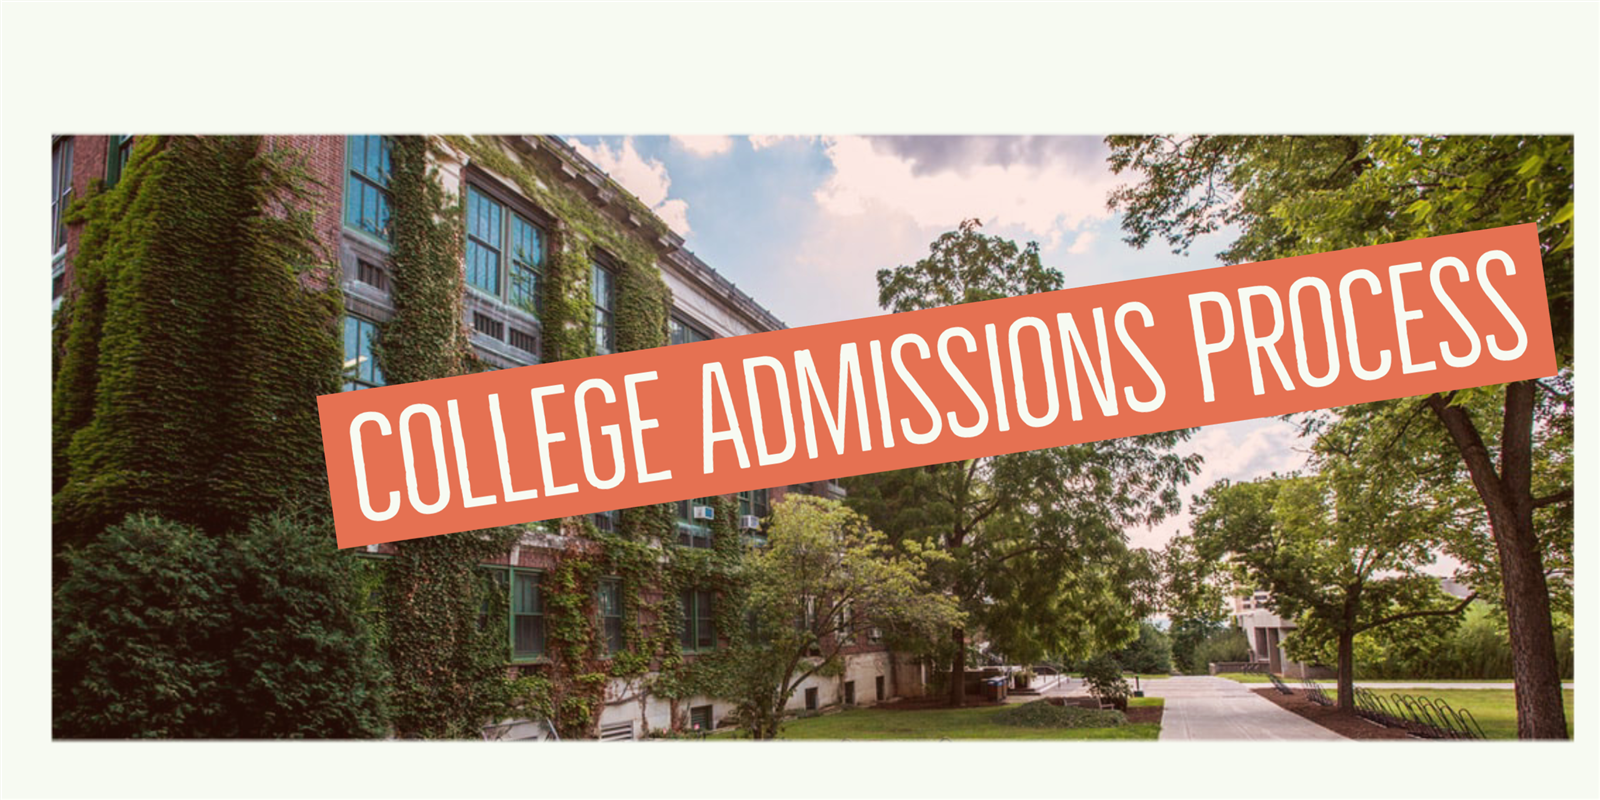 See Opportunities to Learn About the College Admissions Process